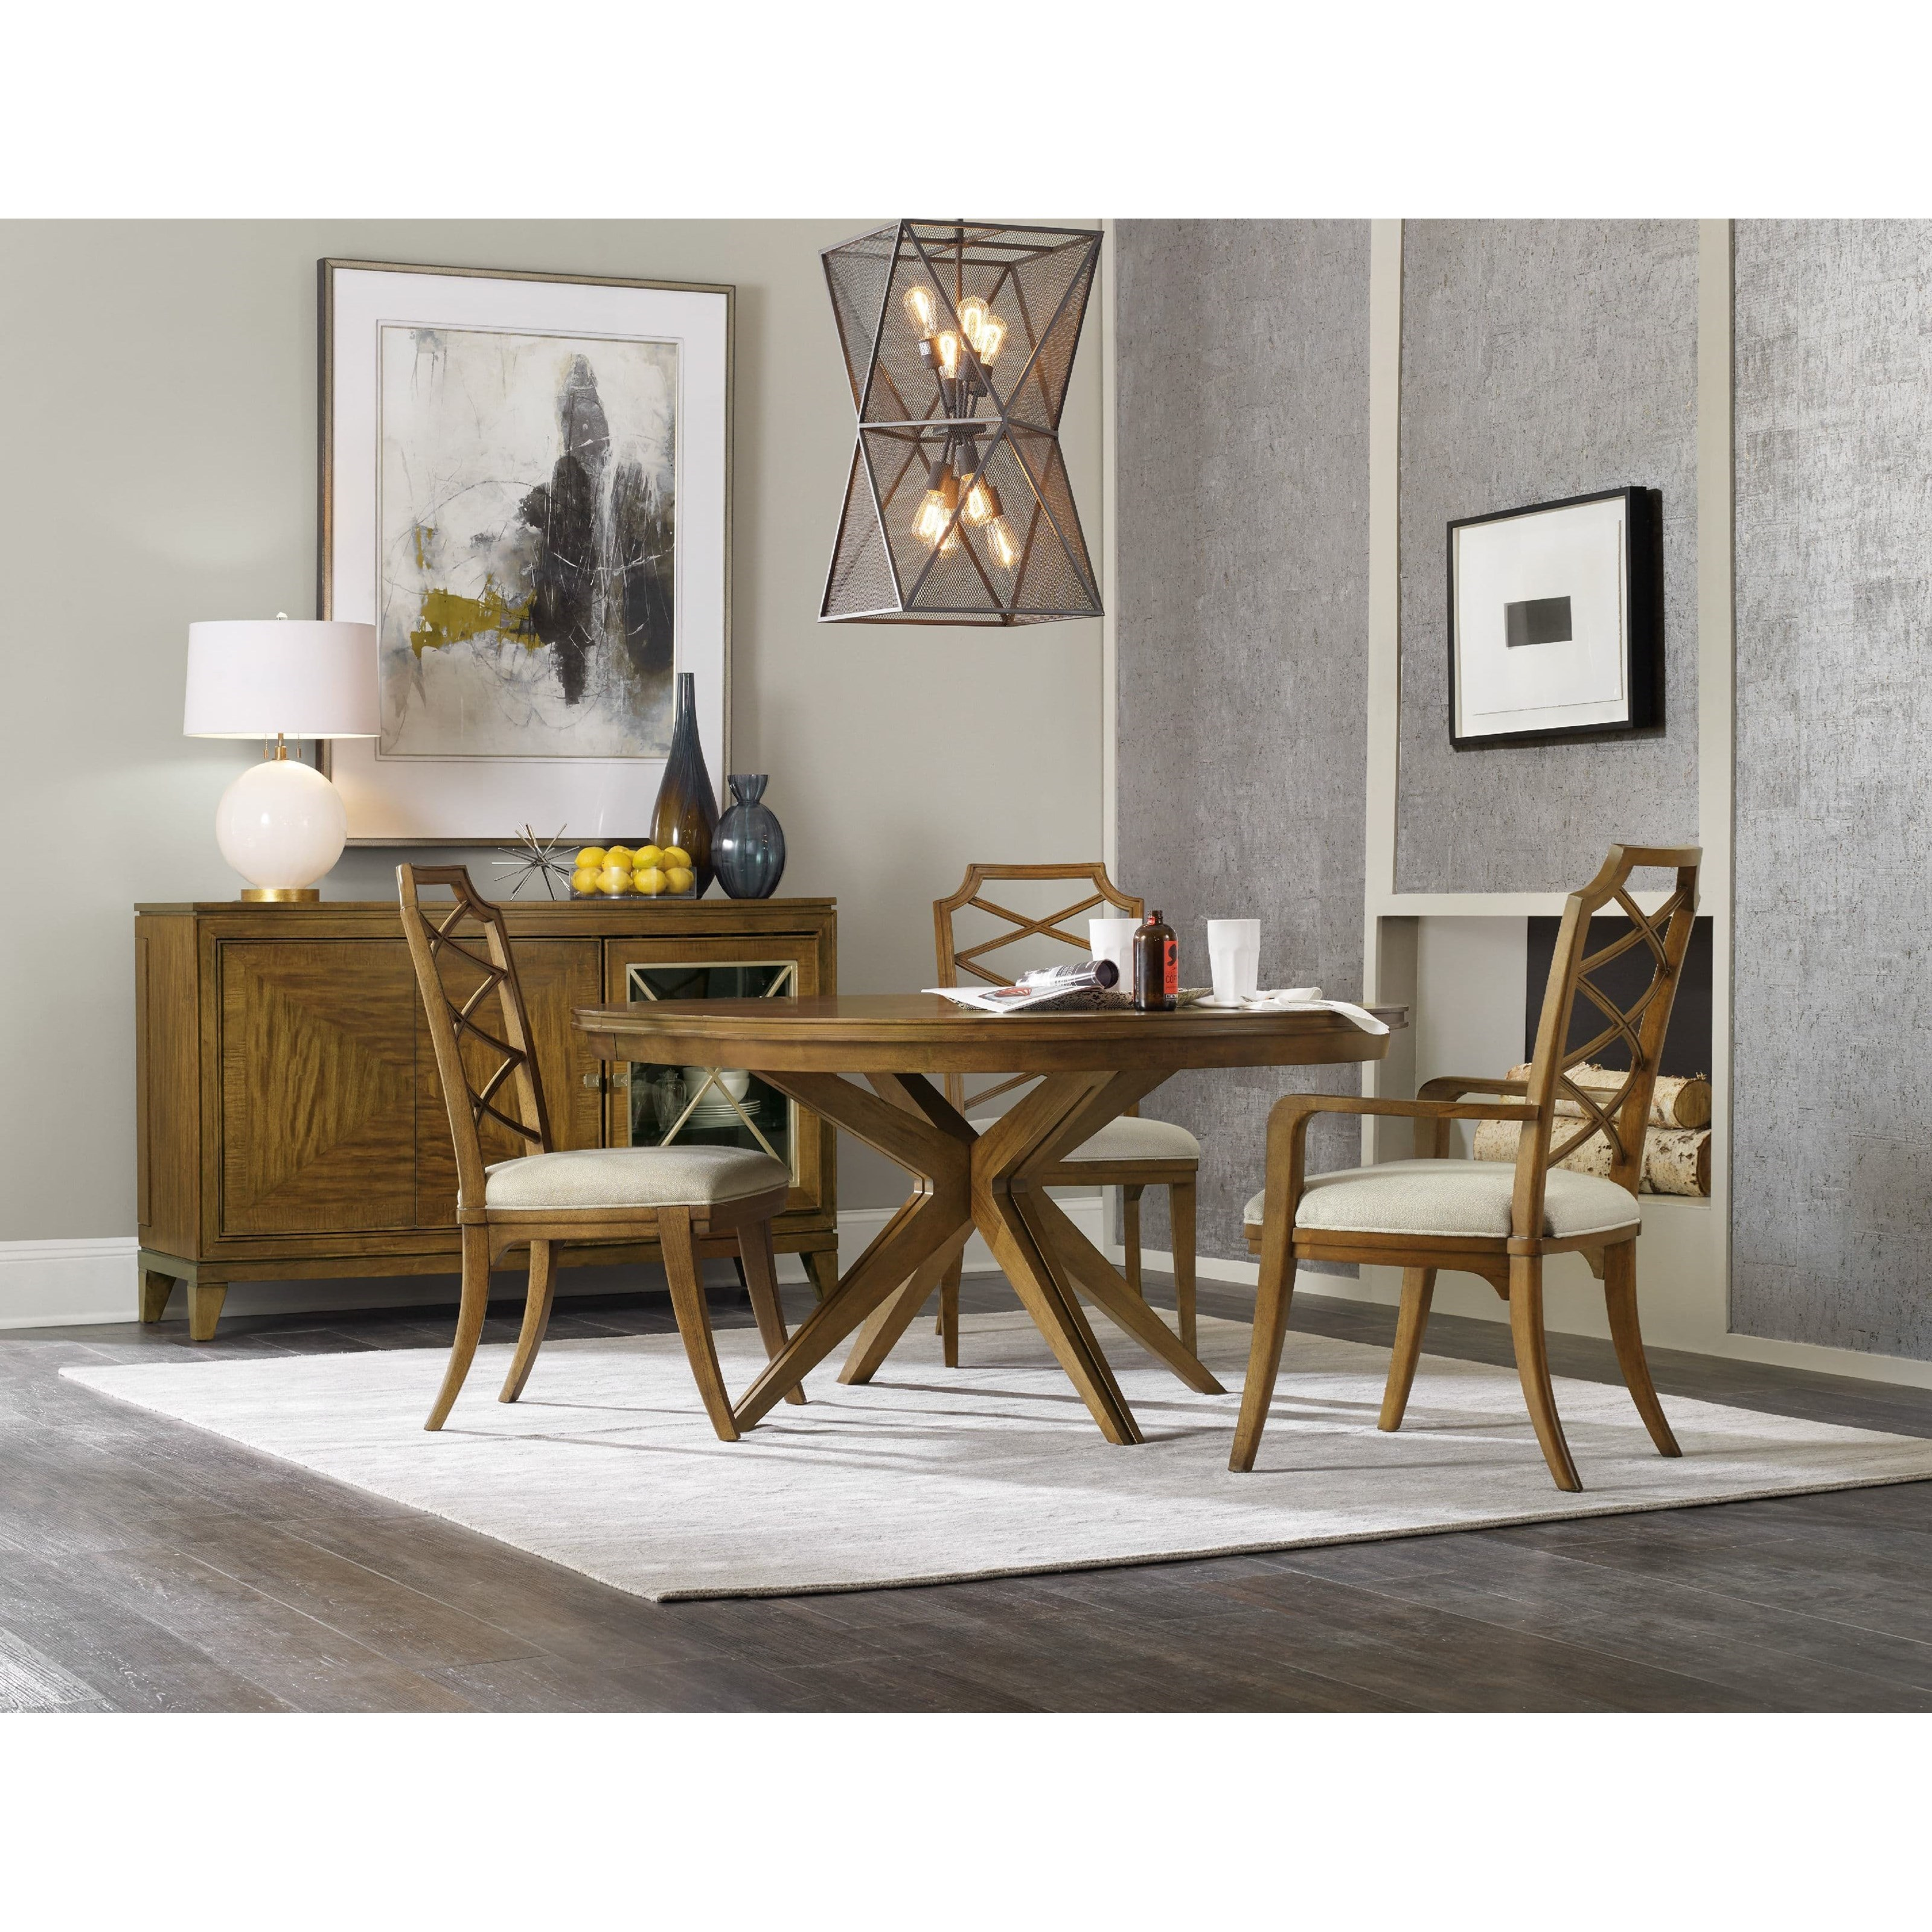 Hooker furniture retropolitan casual dining room group for Casual dining room chairs